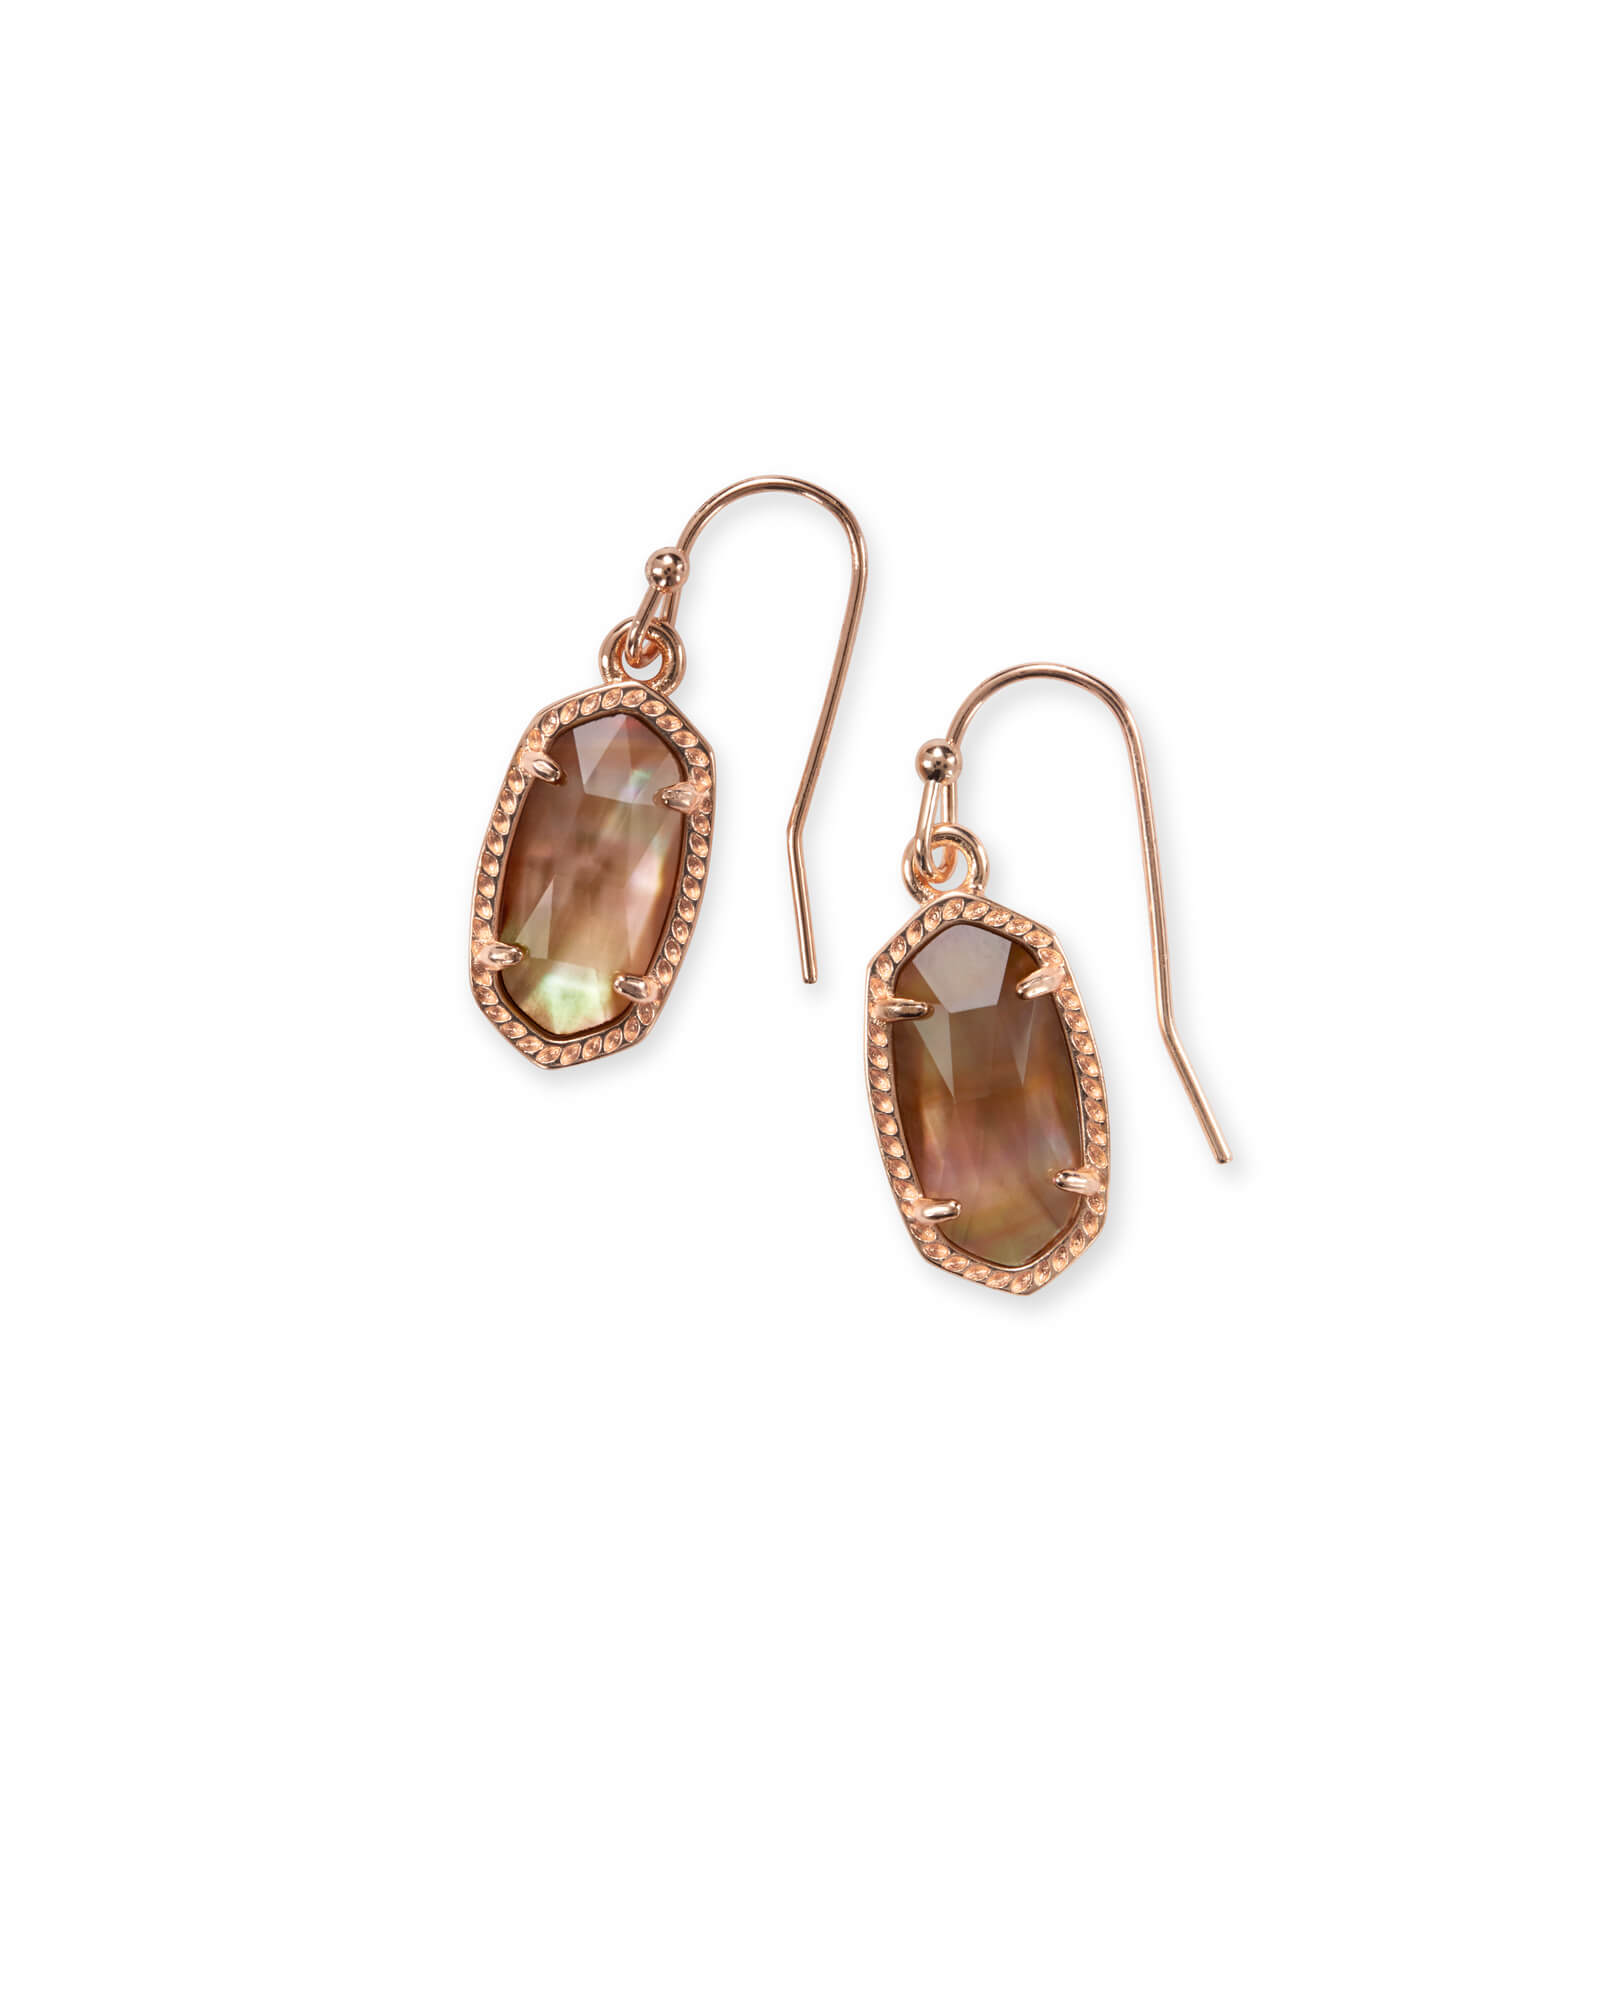 Lee Rose Gold Drop Earrings in Brown Mother of Pearl